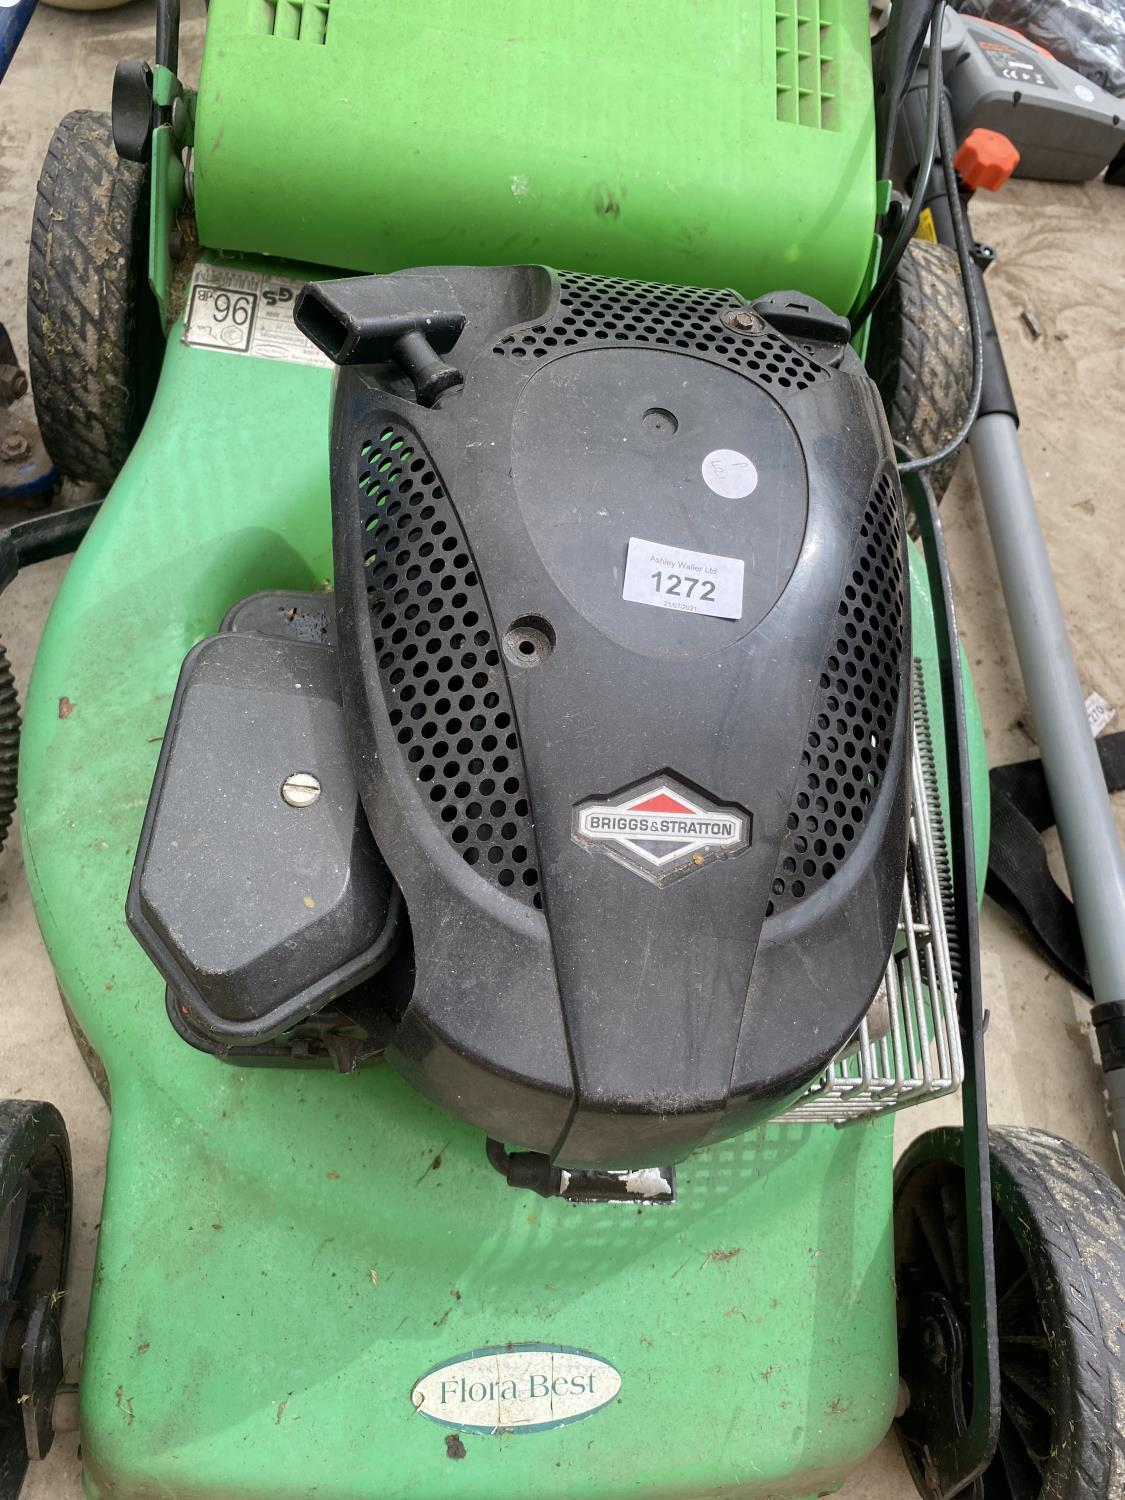 A FLORA BEST LAWN MOWER WITH GRASS BOX AND BRIGGS AND STRATTON PETROL ENGINE - Image 3 of 5